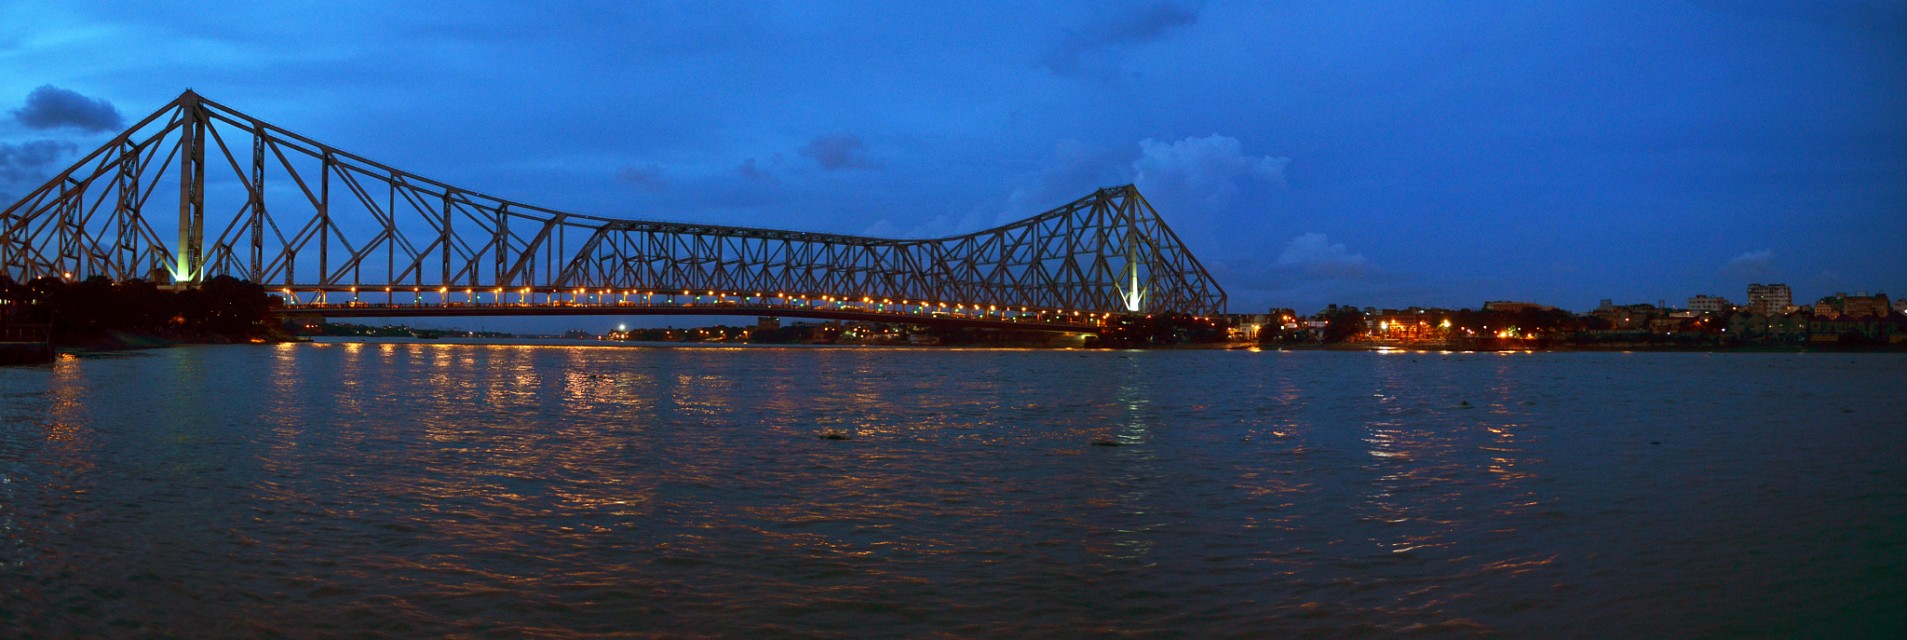 Awesome Kolkata! - Howrah Bridge